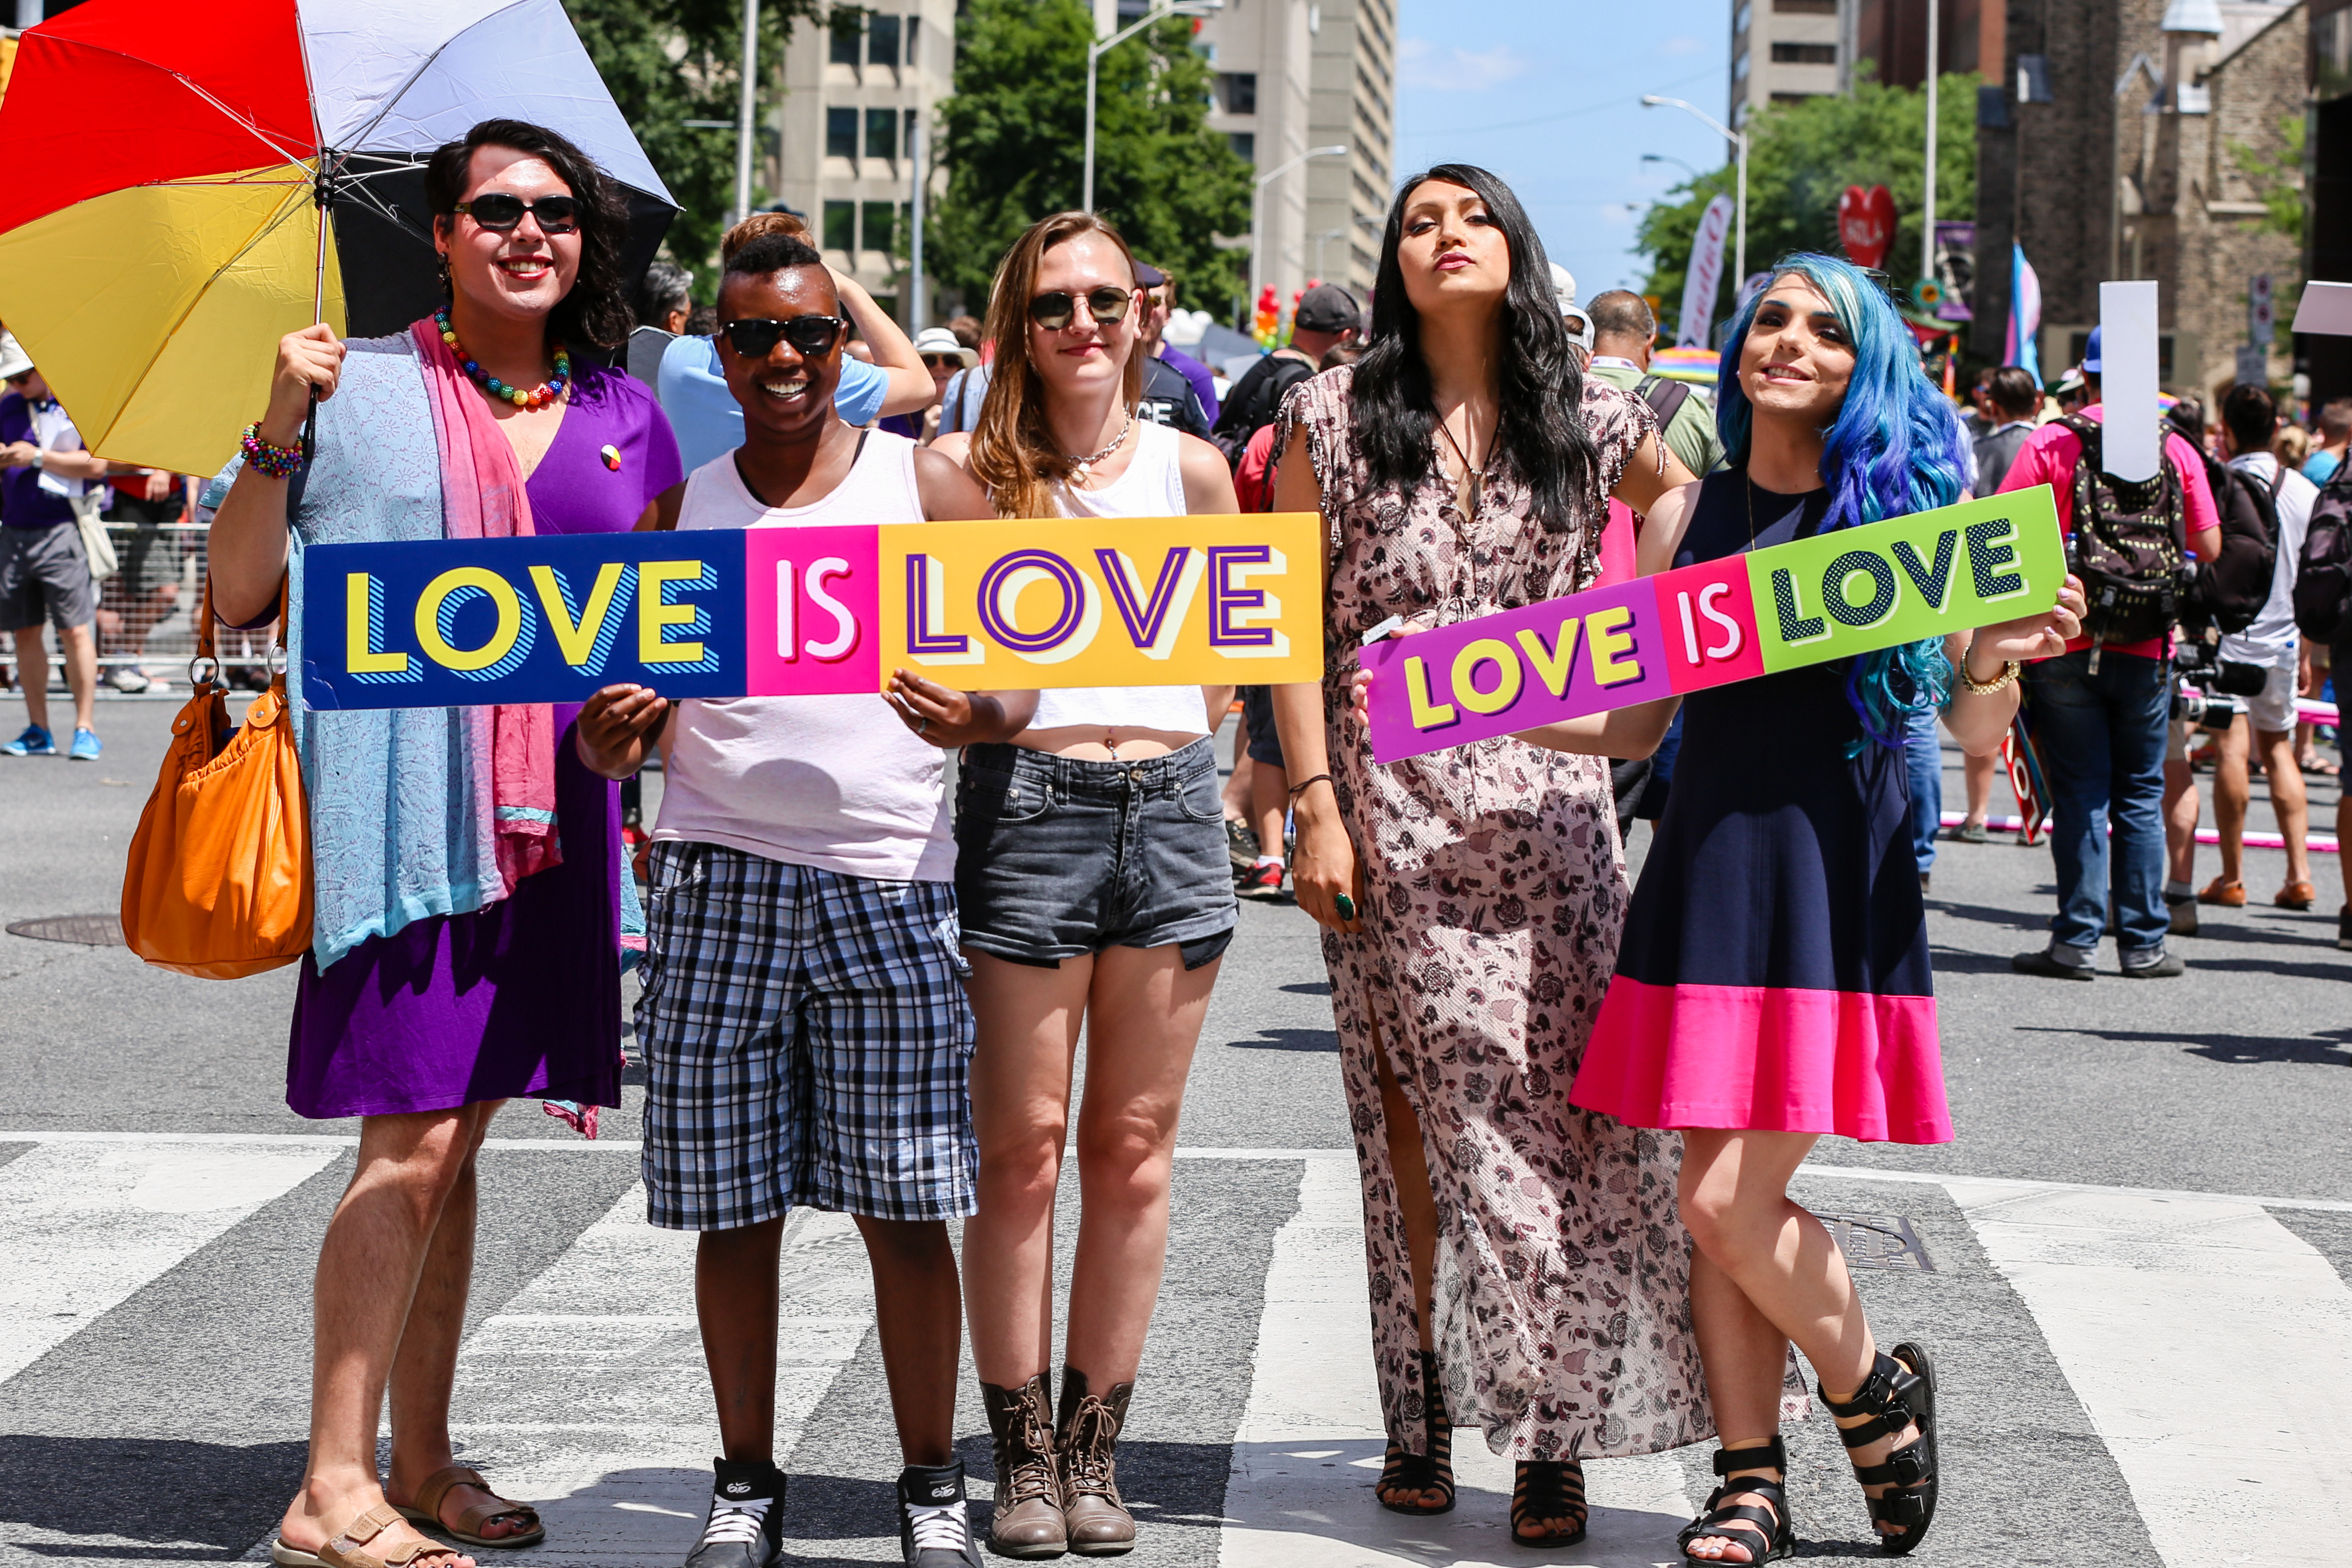 Pride People with Love Signs